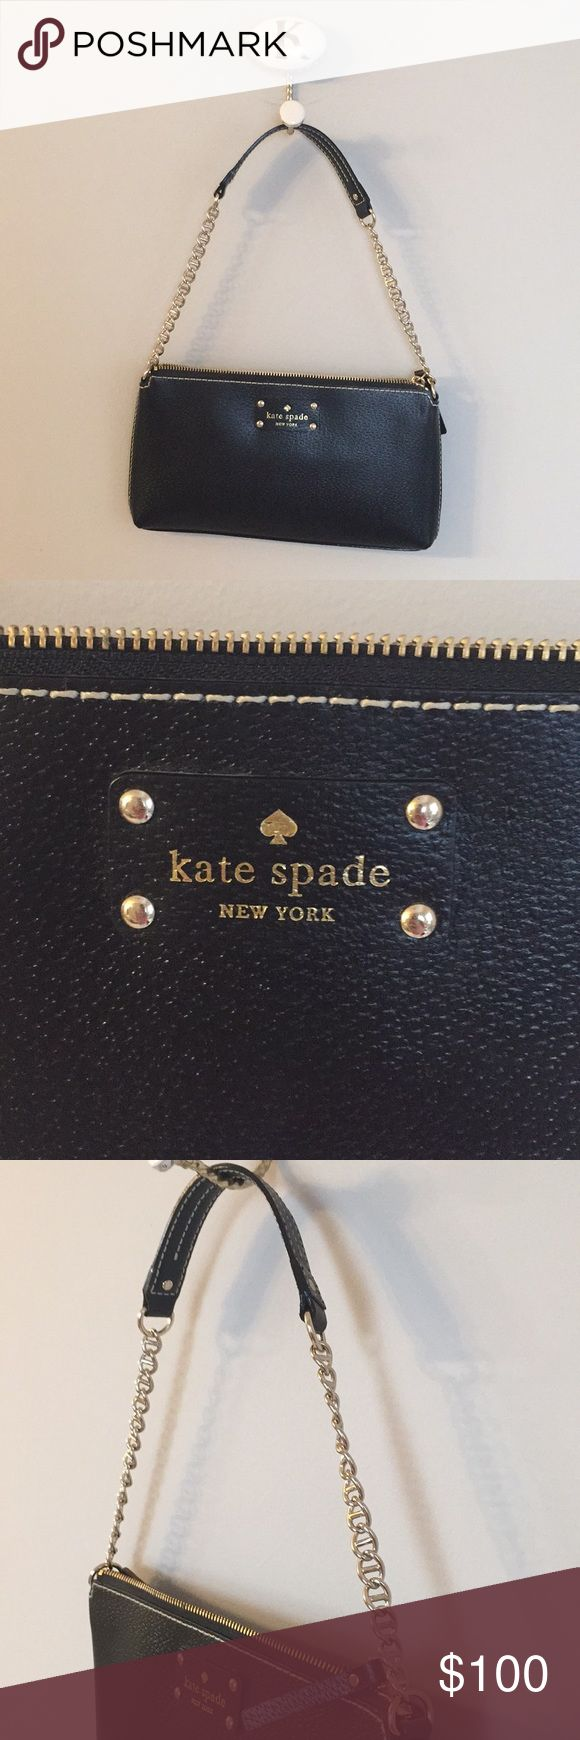 Kate Spade Black Leather Handbag A dainty black leather handbag for a fun night out! Perfect condition, never used. Bag has a gold chain strap that leads up to a leather handle at the top. Cute pink polka dot cloth inside. Gold zipper across the top of the bag. Logo on the front! kate spade Bags Shoulder Bags